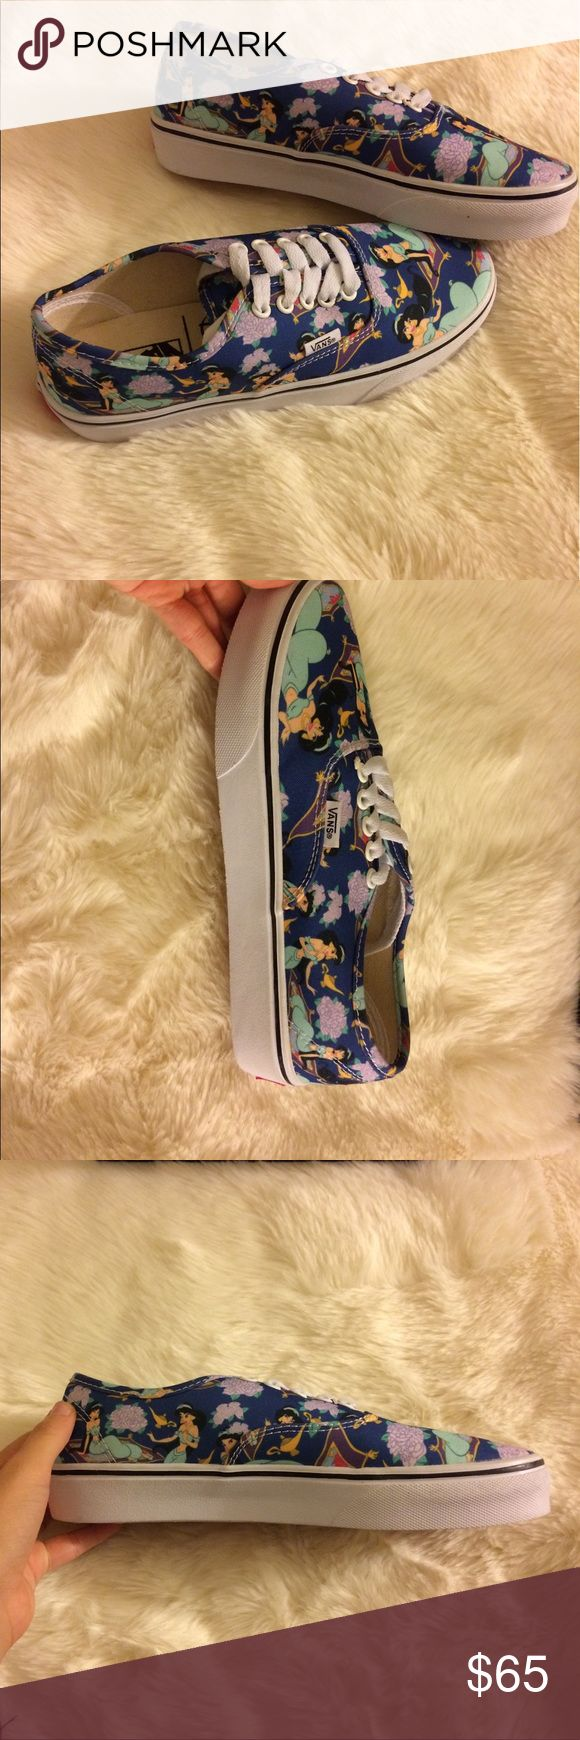 Princess Jasmine Disney Vans This gem has been sitting in my closet for far too long! This particular style is no longer made! Though I love them, they are too big for me. Brand new, never worn, and comes with the box. Hopefully will someone will love them as much I do and be able to wear them too 😂 Vans Shoes Sneakers